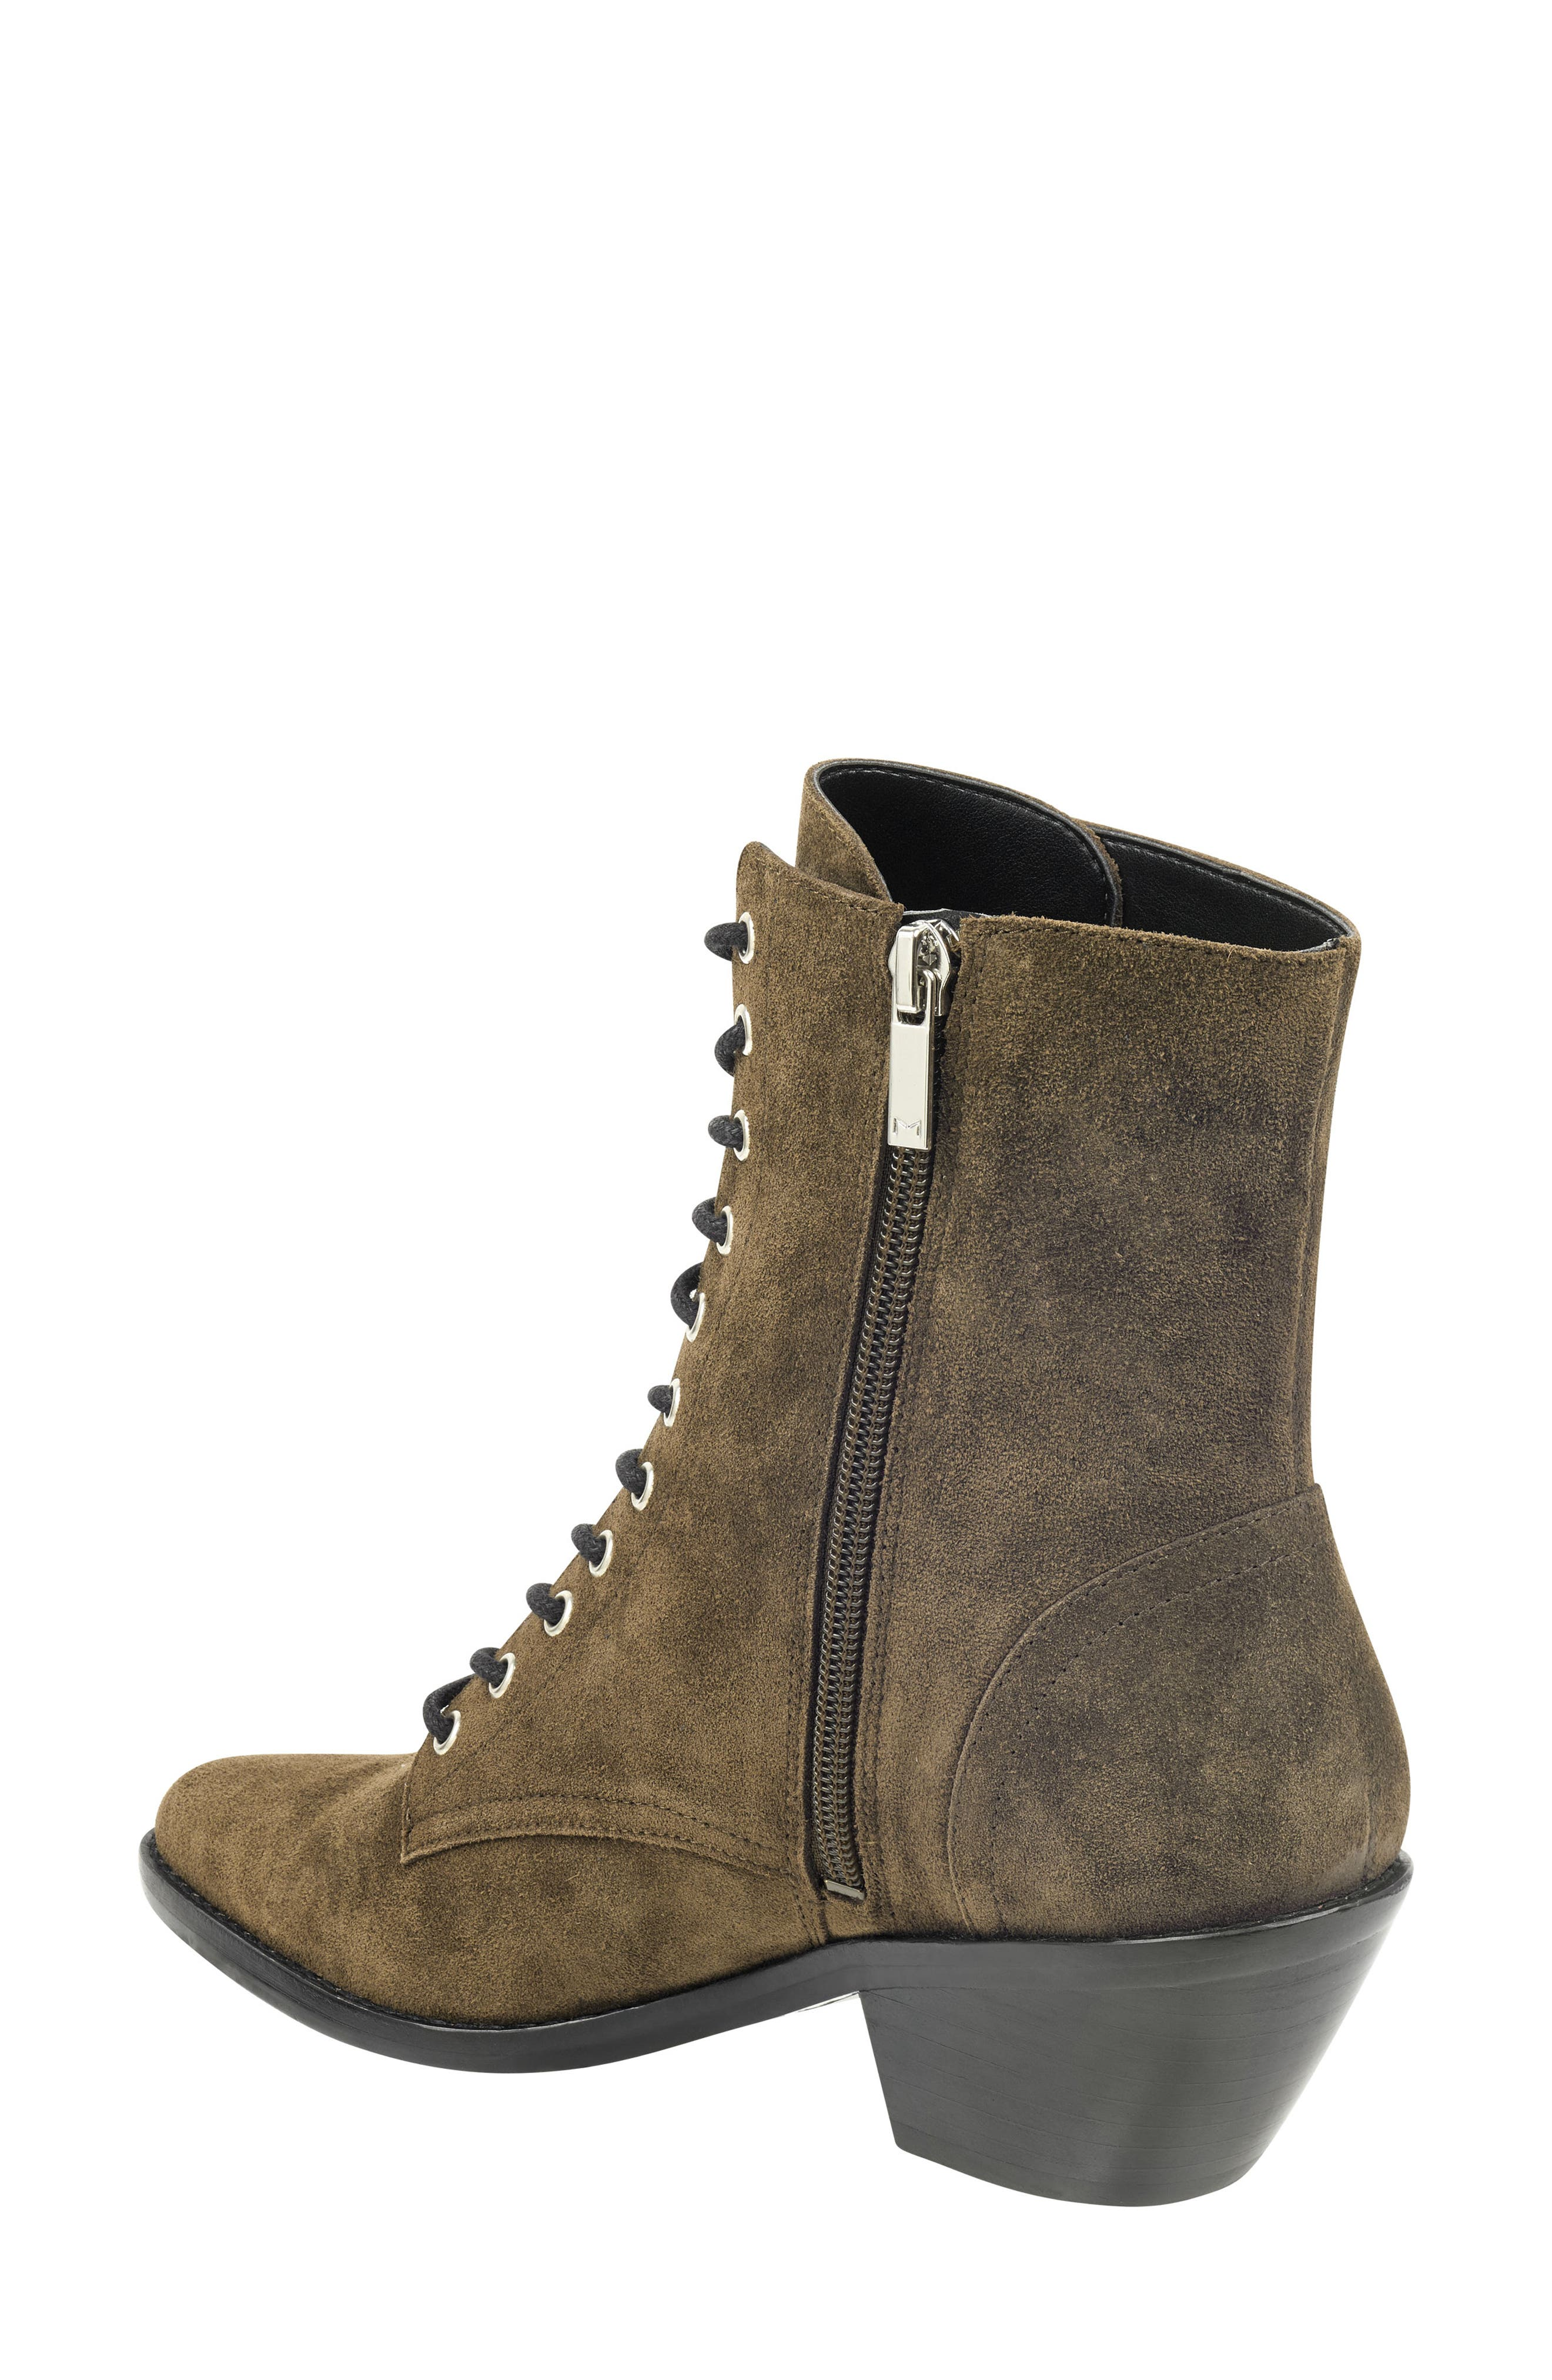 Bowie Lace-Up Boot,                             Alternate thumbnail 2, color,                             OLIVE SUEDE